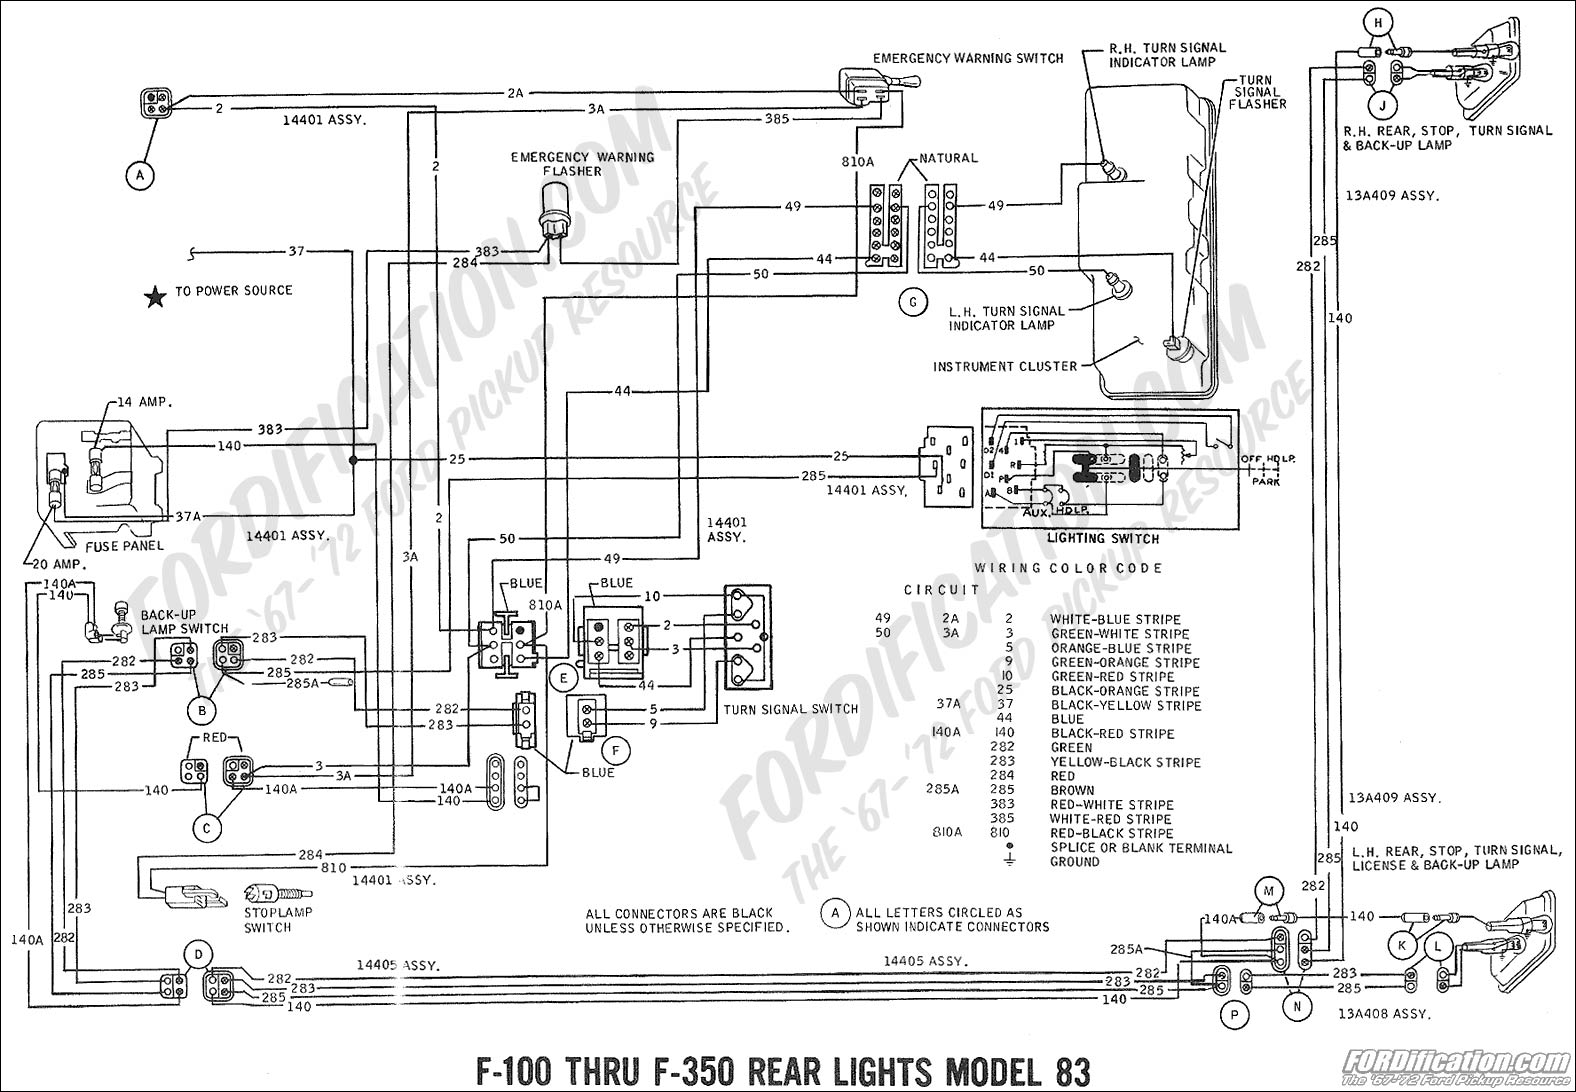 Freightliner Fld120 Wiring Diagrams additionally 1997 Mercury Cougar Xr7 Wiring Diagram as well 1997 Vw Eurovan Wiring Diagram additionally 0tmal Getting Po453 Code 99 Expedition 4 6l Says furthermore CoRSaq. on 99 f150 wiring schematic